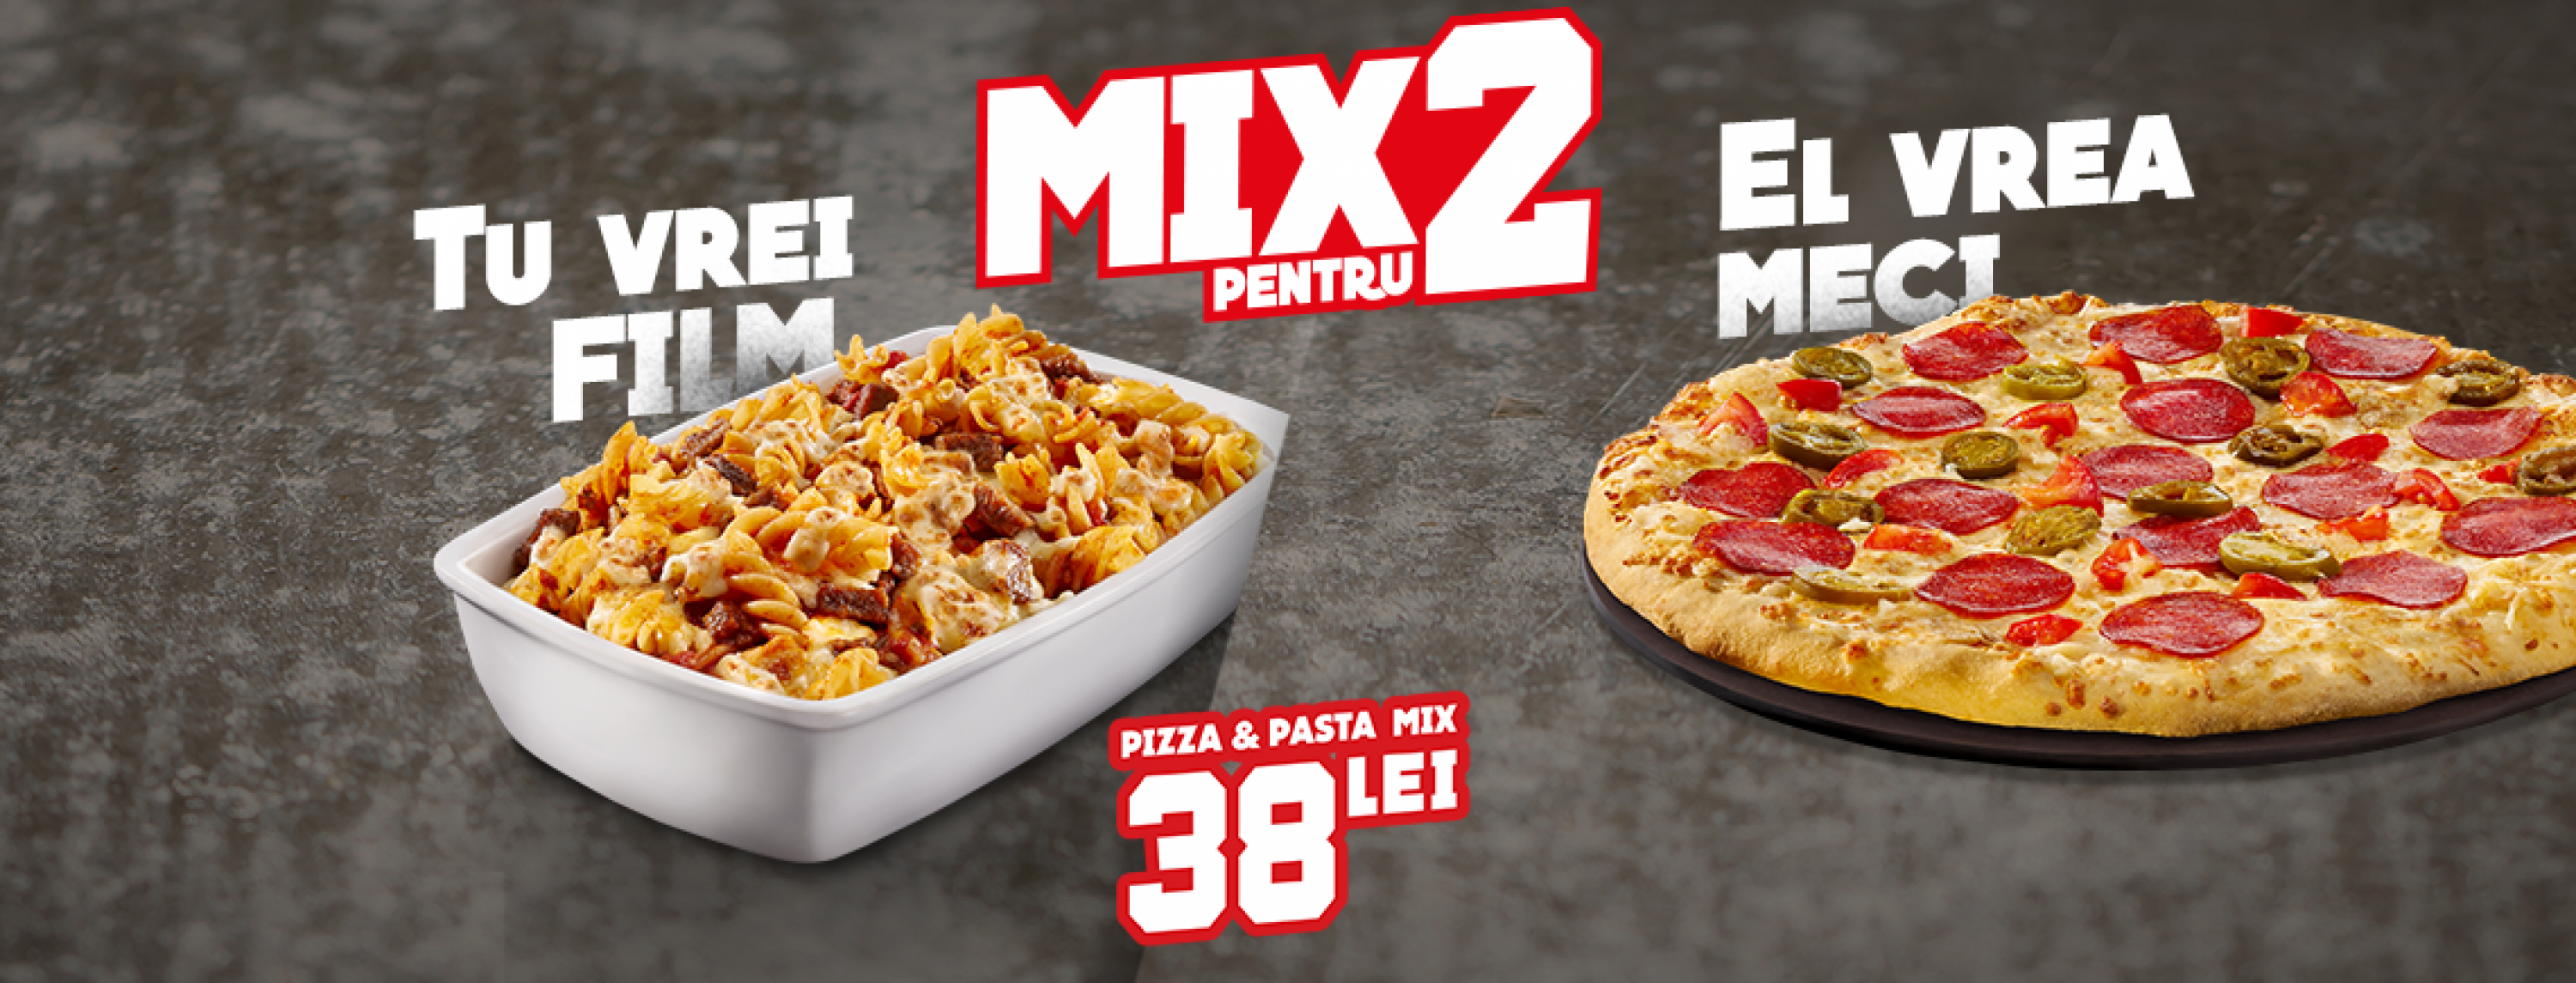 Enjoy a range of delectable treats from Pizza Hut Delivery! Valid till 13 August Payment must be made with a Standard Chartered Credit, Debit or MANHATTAN Card. Valid for delivery orders only. Minimum spend is not inclusive of delivery surcharge. Delivery surcharge applies. Not valid with other promotions, discount, or offers.